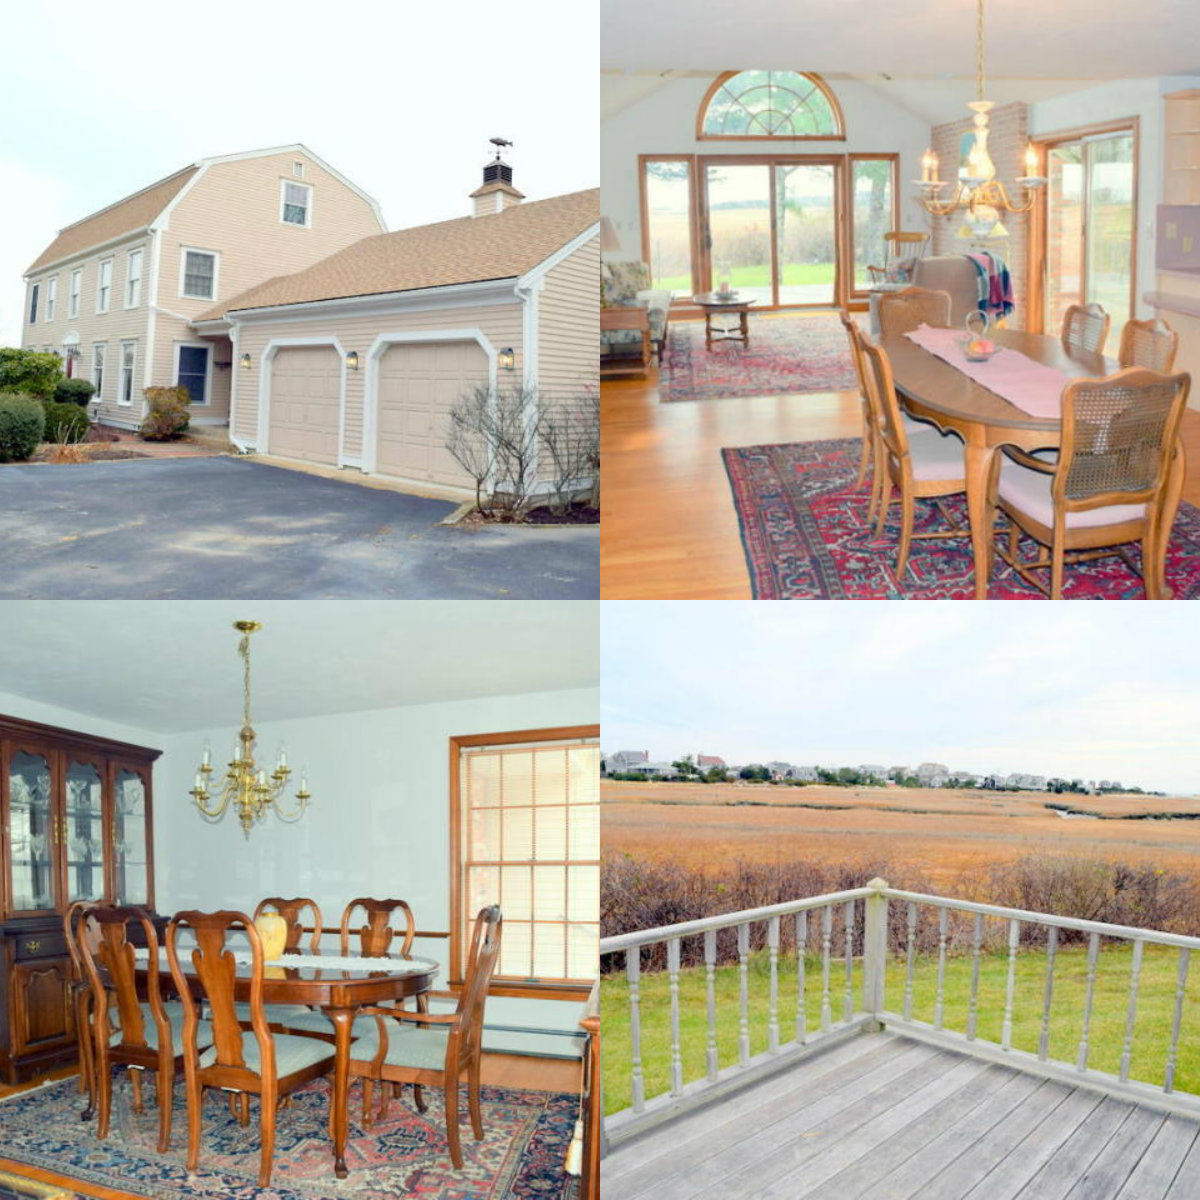 Images of 28 Marshview Circle by Sandy Neck on Cape Cod MA